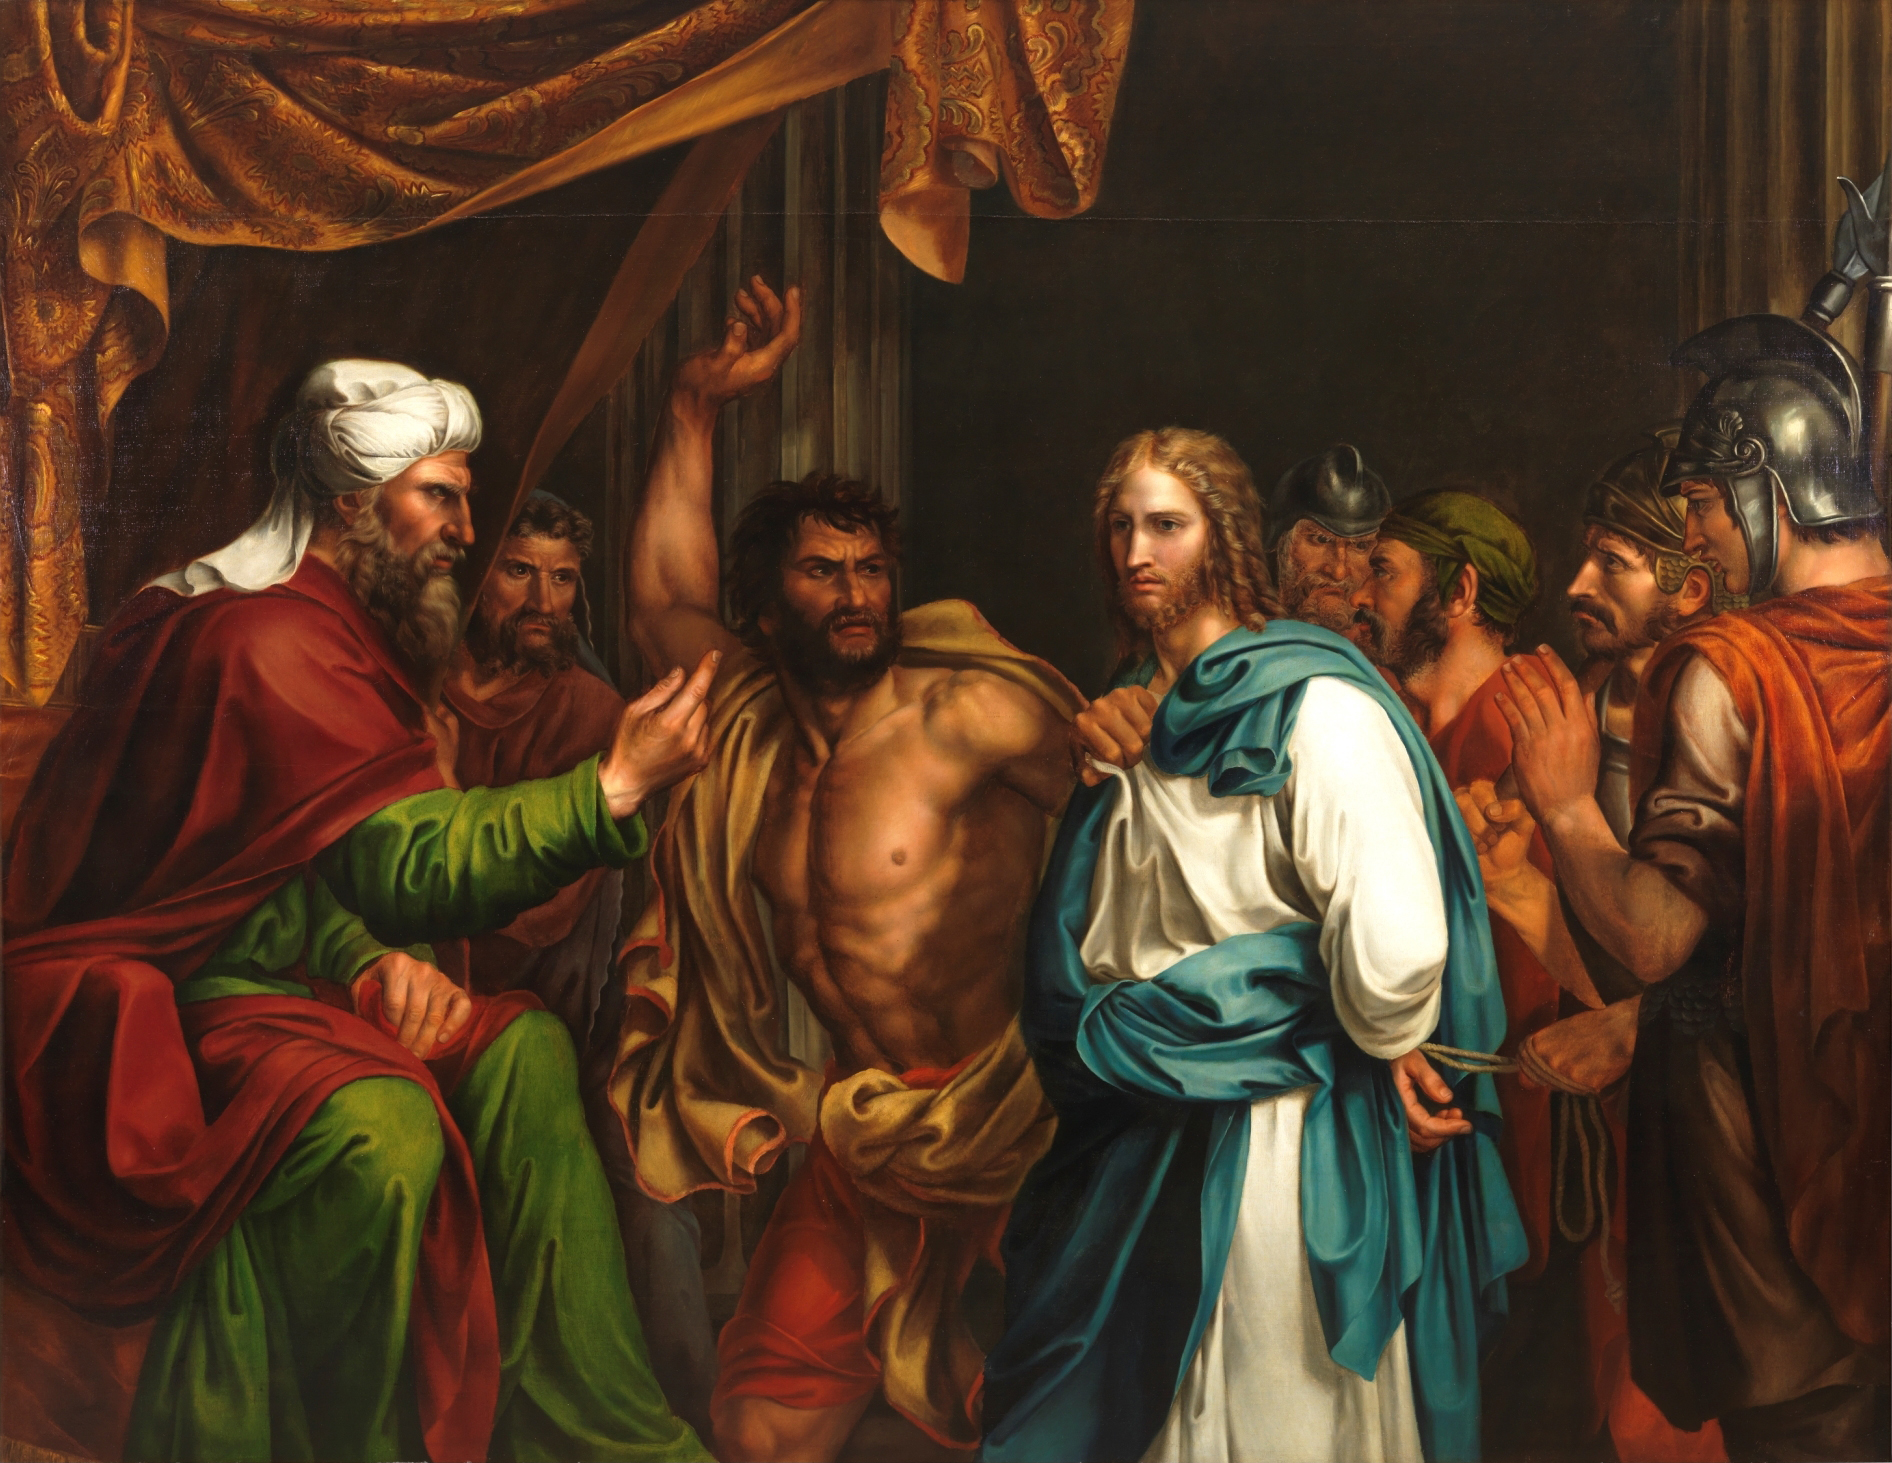 Judas and Caiaphas (Conversations Through the Pages - New Testament)